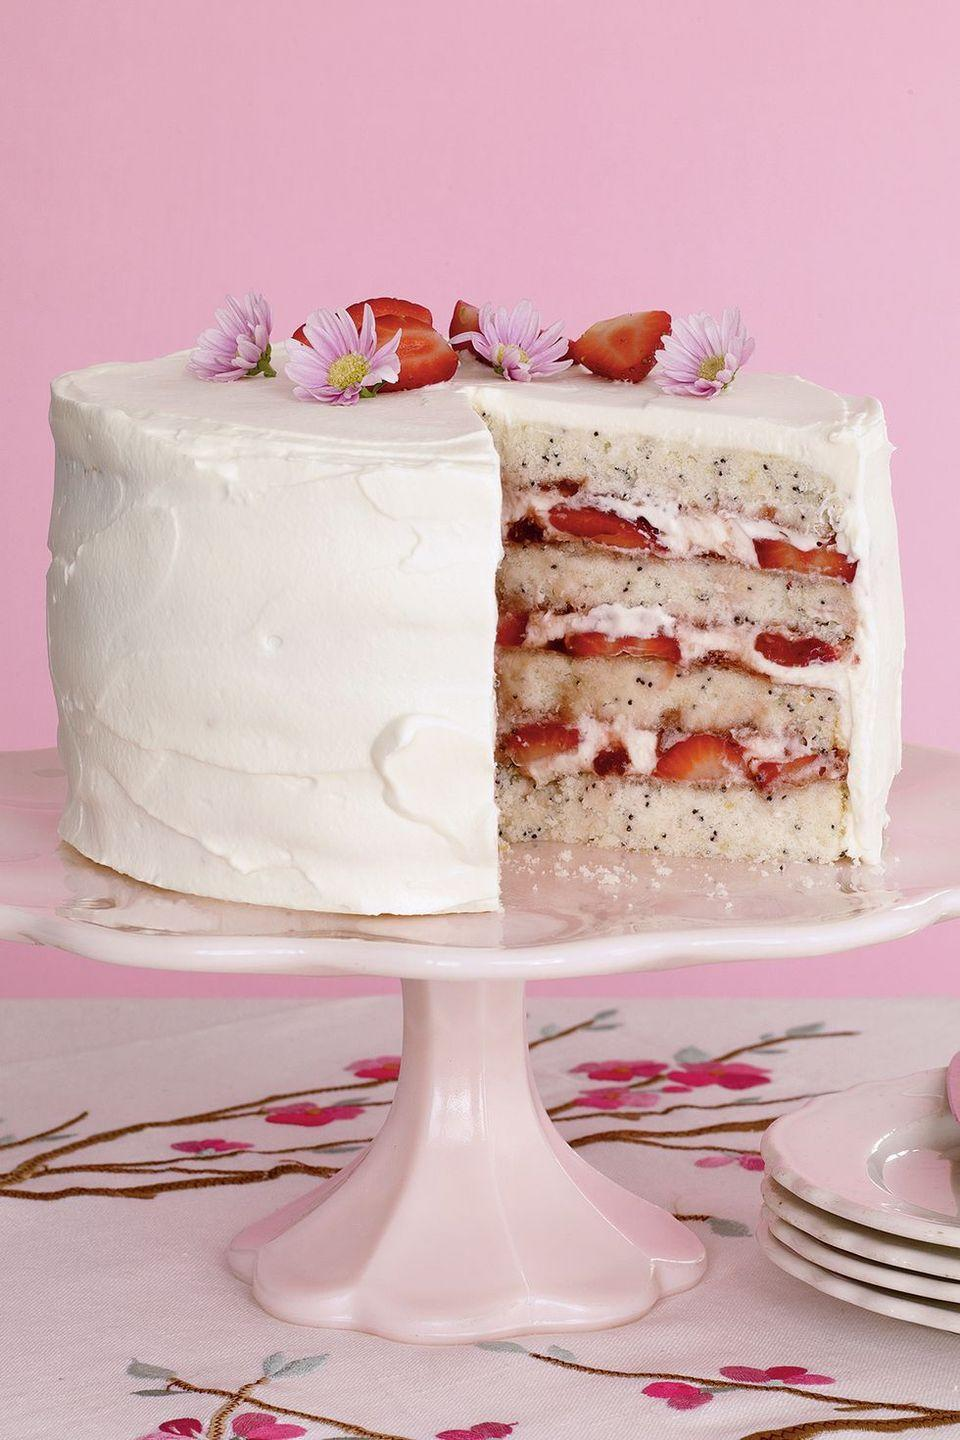 """<p>If you're a huge fan of lemon poppy seed muffins, take your obsession to the next level with this delicious and light lemon poppy seed cake. Intersperse the layers with fresh-cut berries and cream and you'll have found your new favorite dessert. </p><p><strong><em><a href=""""https://www.womansday.com/food-recipes/food-drinks/recipes/a10913/lemon-poppy-seed-cake-strawberries-recipe-122355/"""" rel=""""nofollow noopener"""" target=""""_blank"""" data-ylk=""""slk:Get the Lemon Poppy Seed Cake with Strawberries recipe."""" class=""""link rapid-noclick-resp"""">Get the Lemon Poppy Seed Cake with Strawberries recipe. </a></em></strong></p>"""